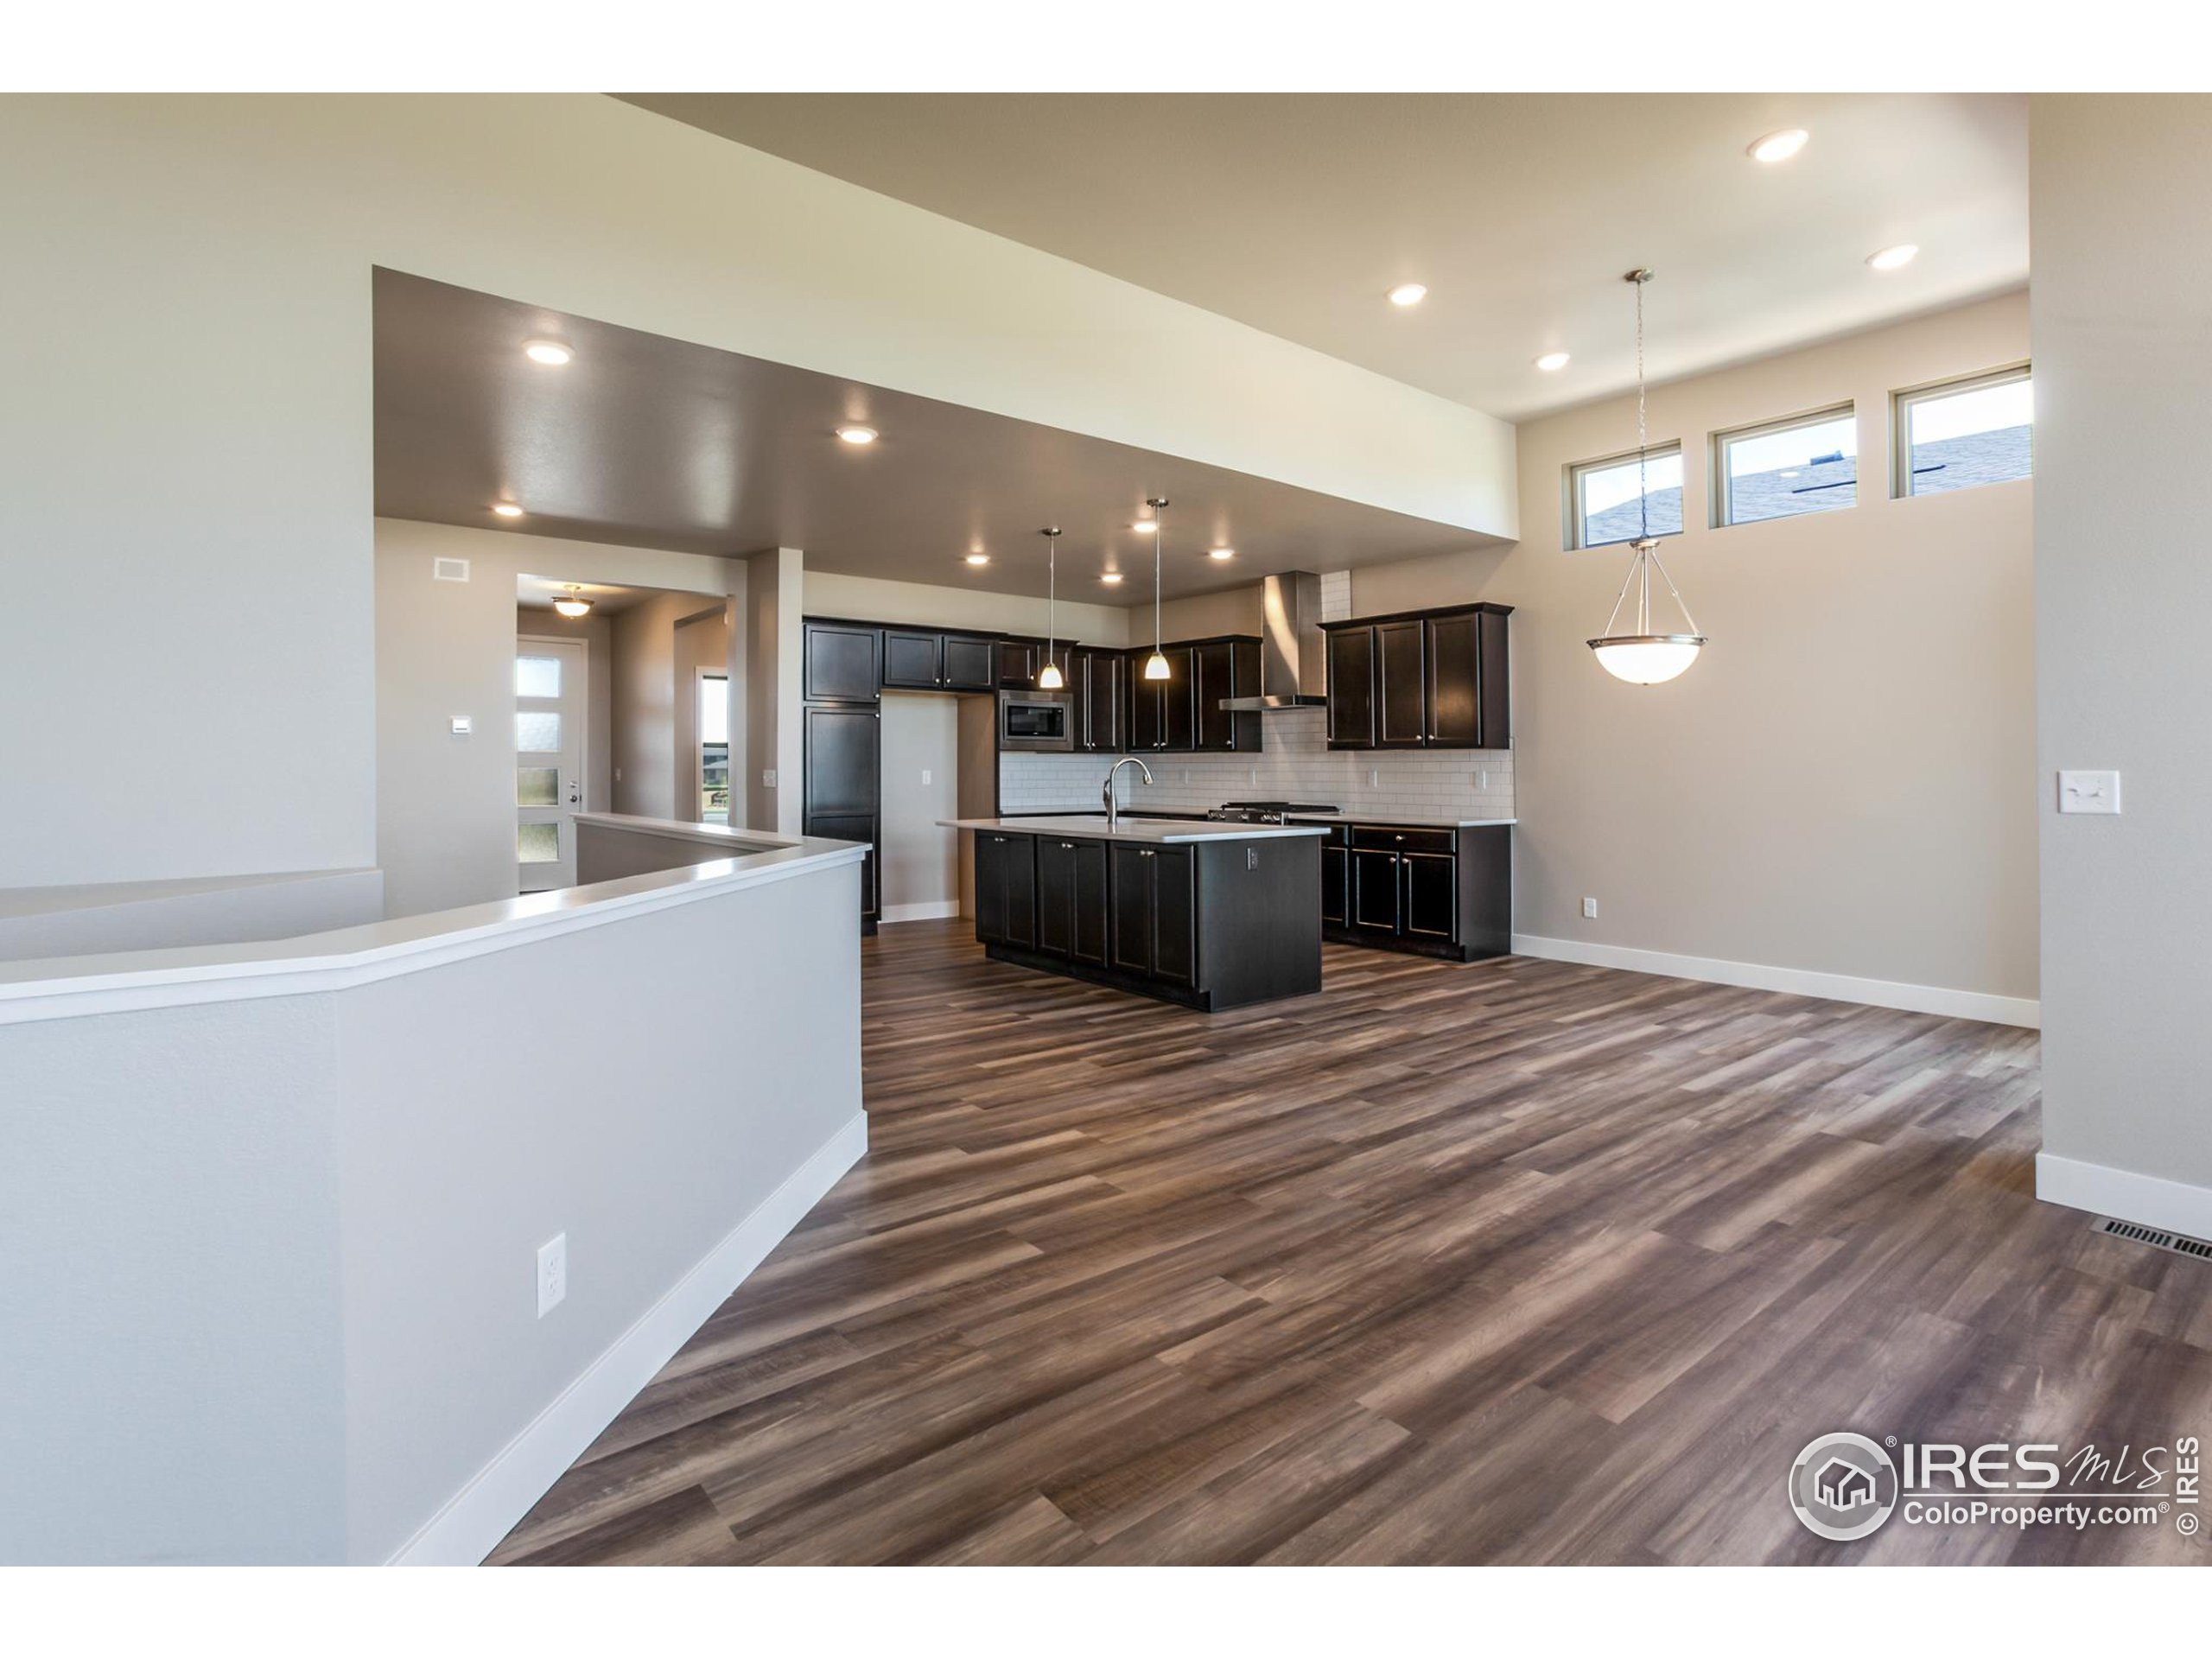 EXAMPLE PHOTO: KITCHEN ISLAND, OPEN TO DINING ROOM & GREAT ROOM